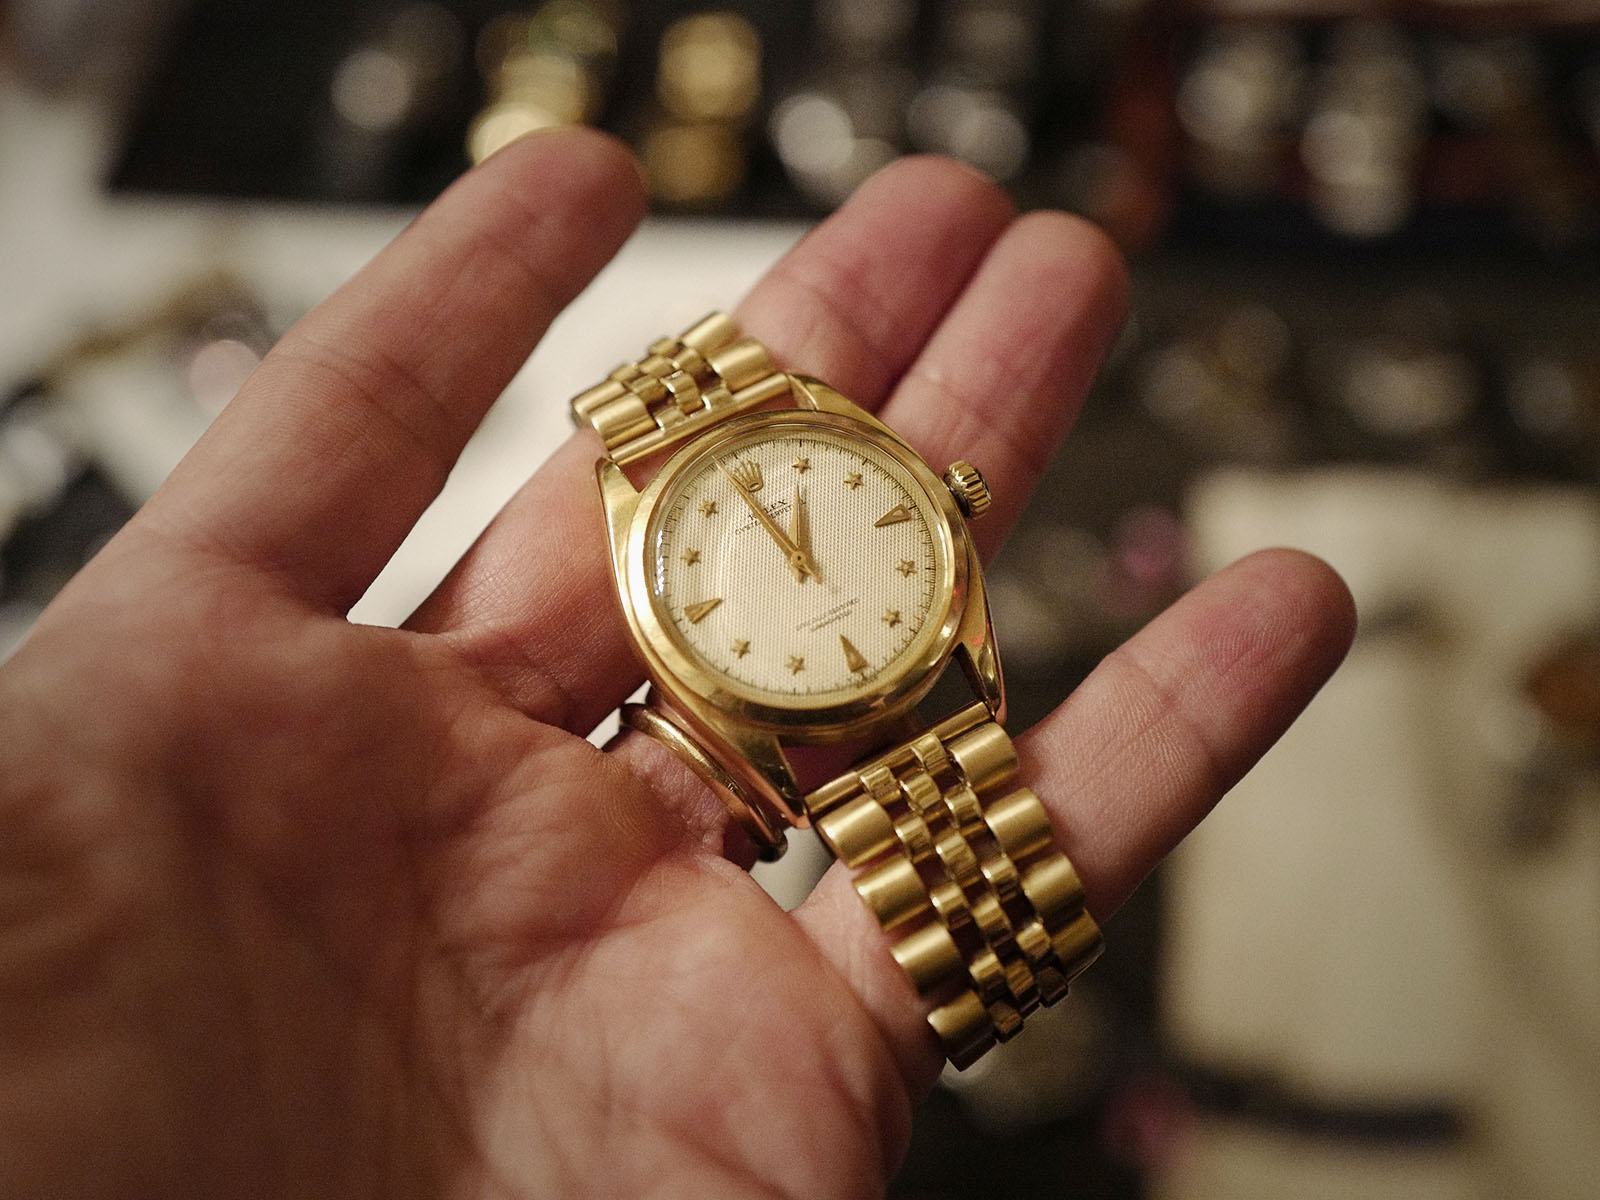 Rolliefest New York - hop on board of this crazy Watch Gathering